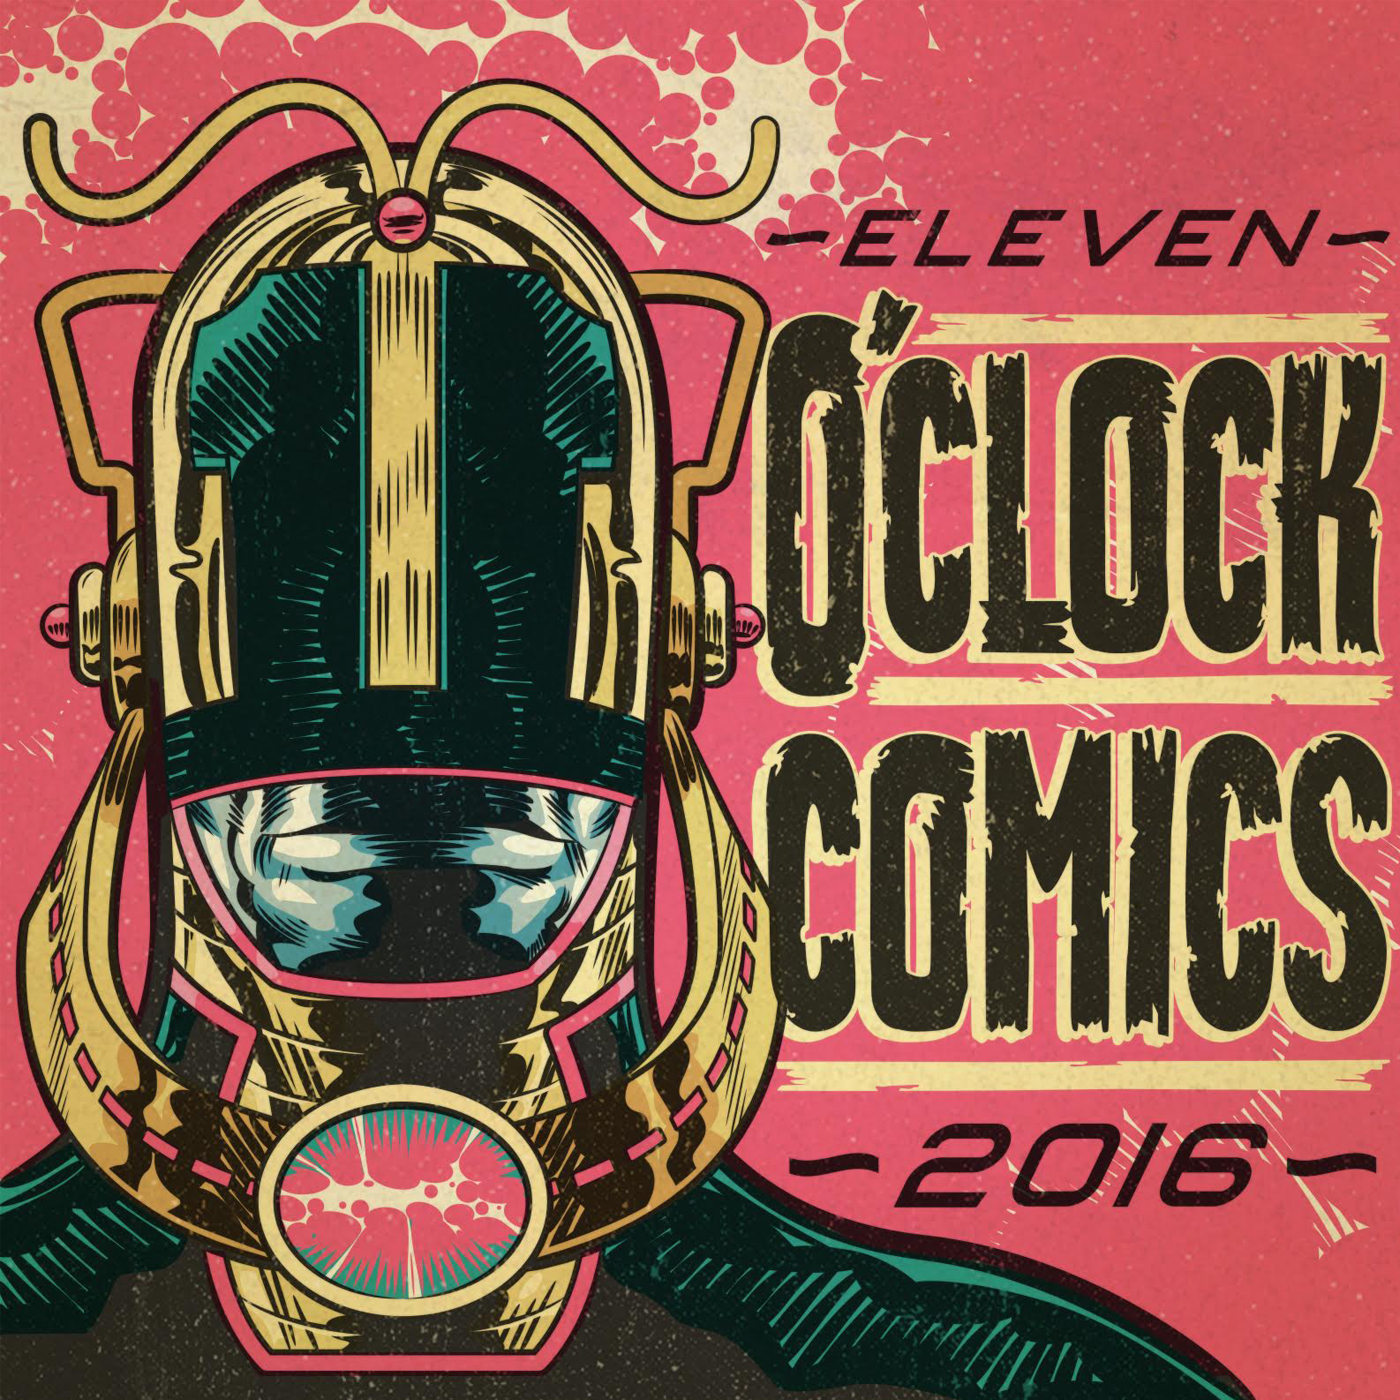 11 O'Clock Comics Episode 415